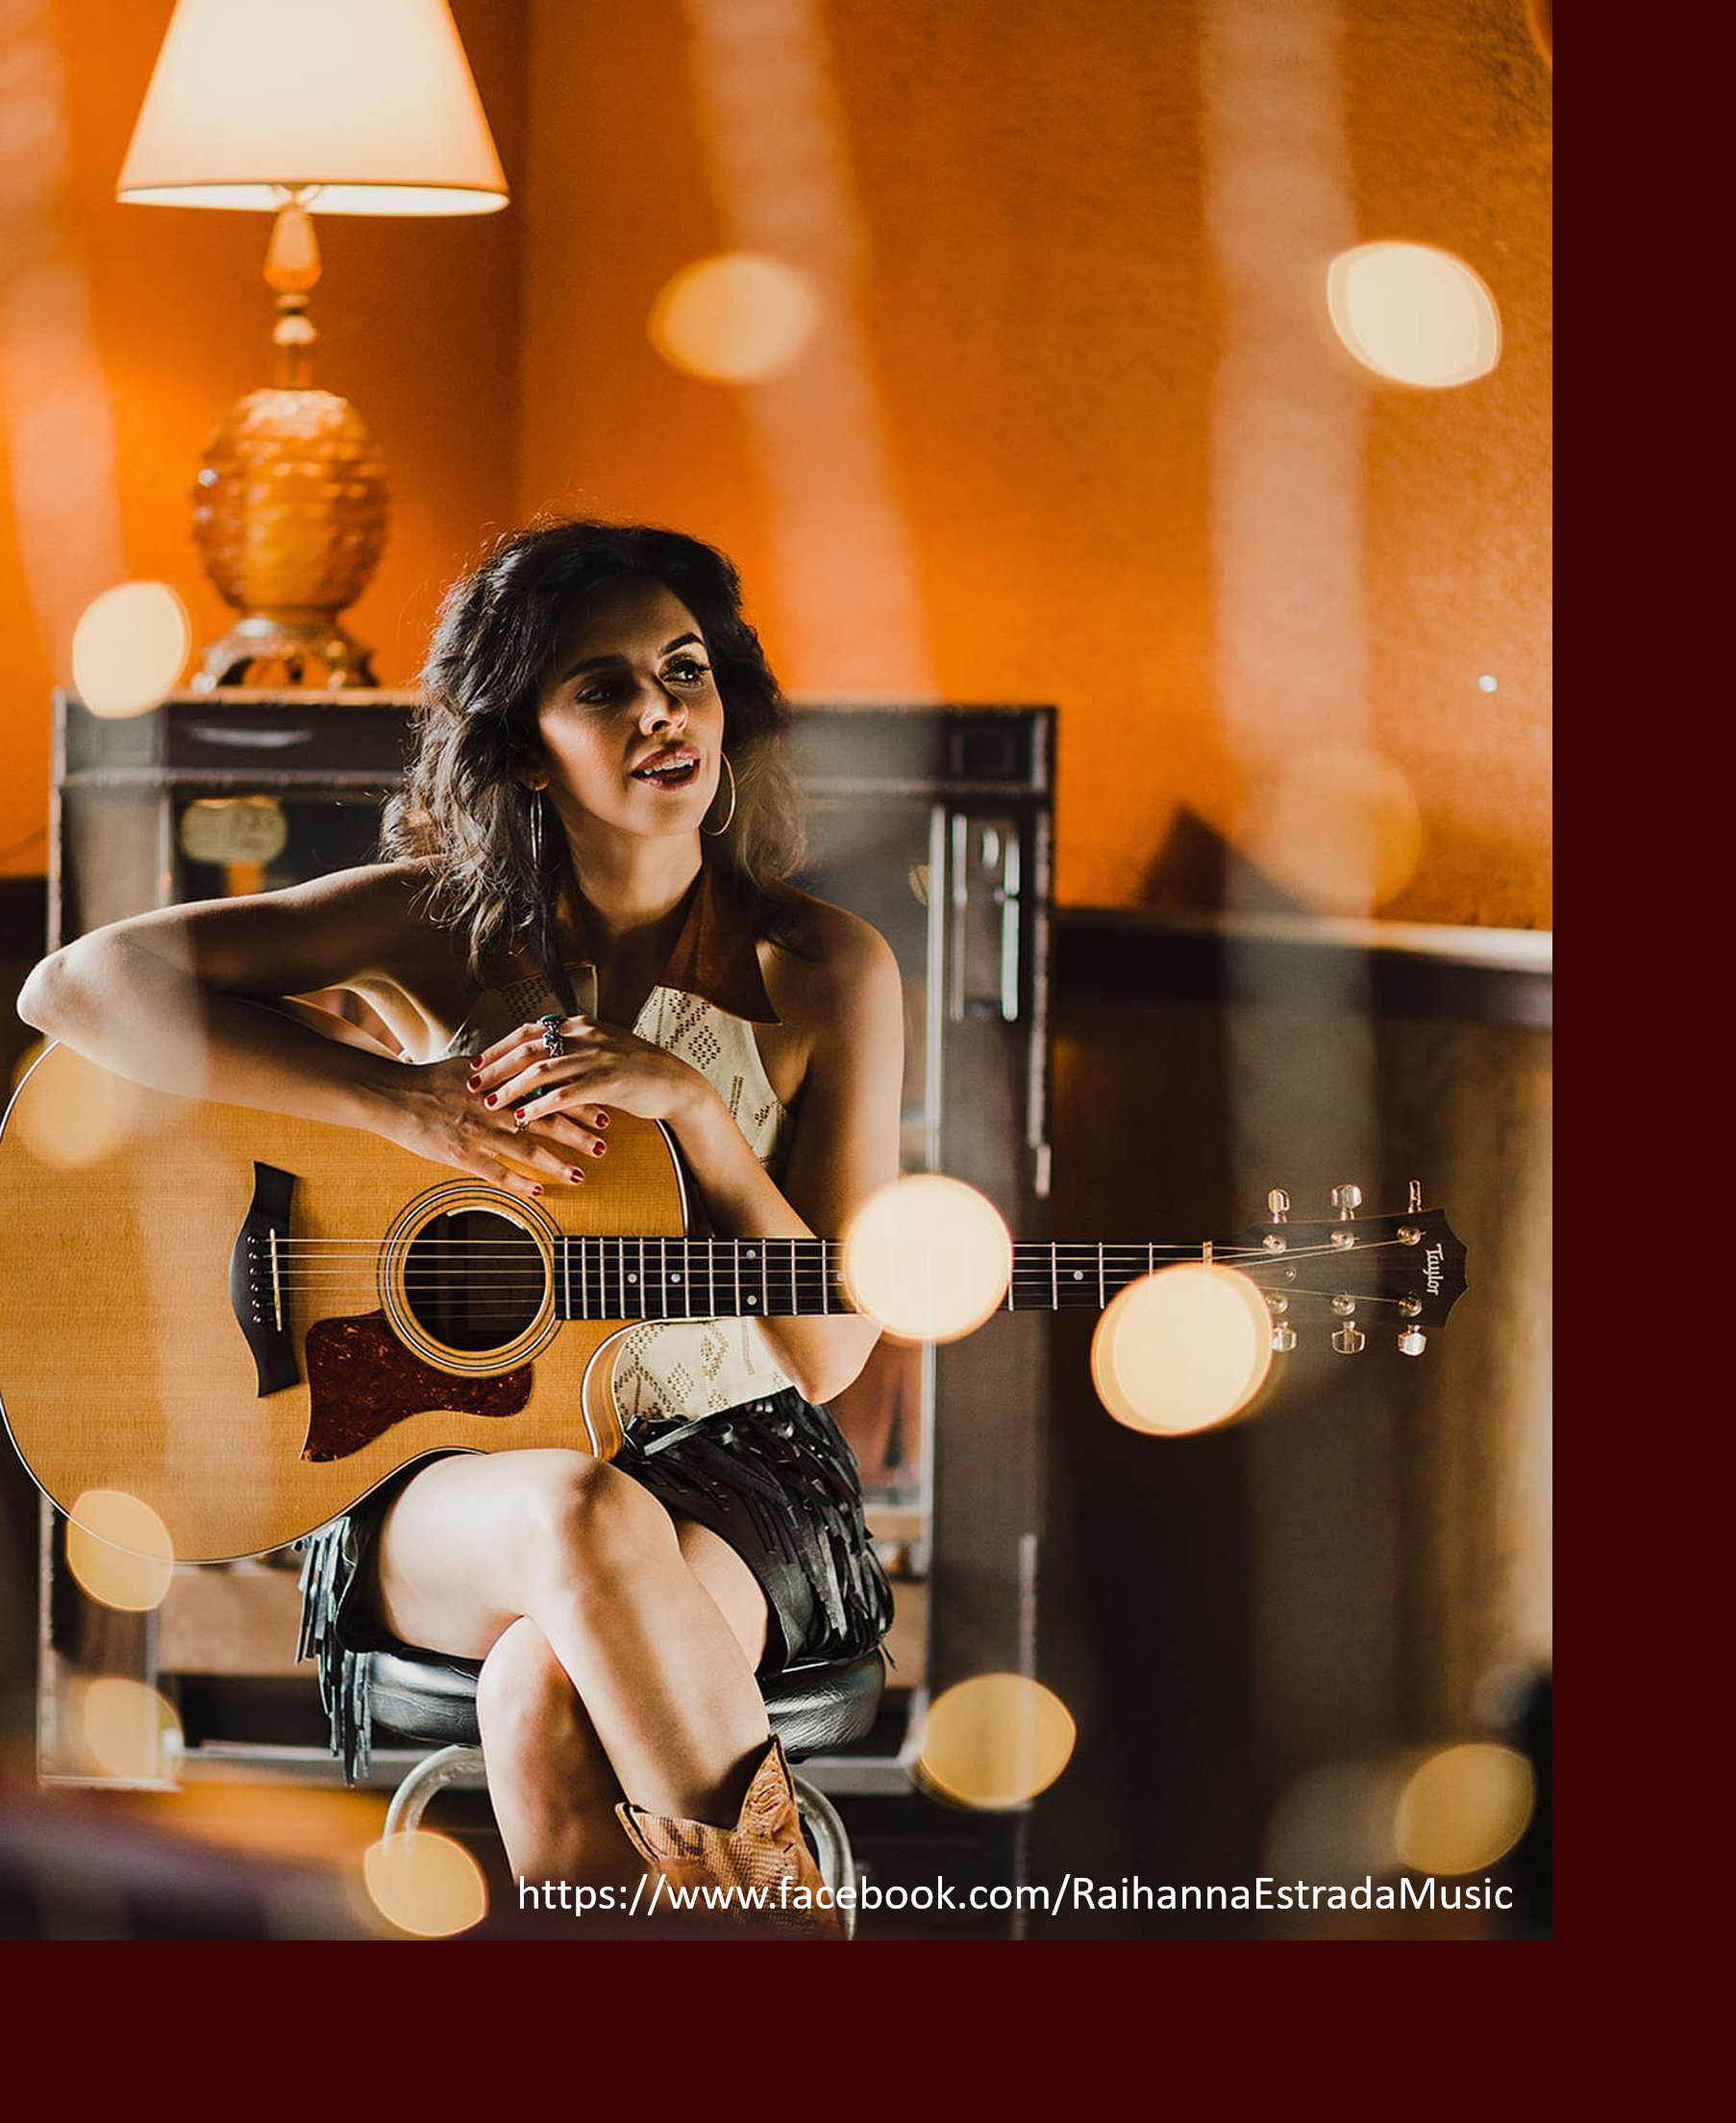 Photo of Raihanna Estrada with guitar